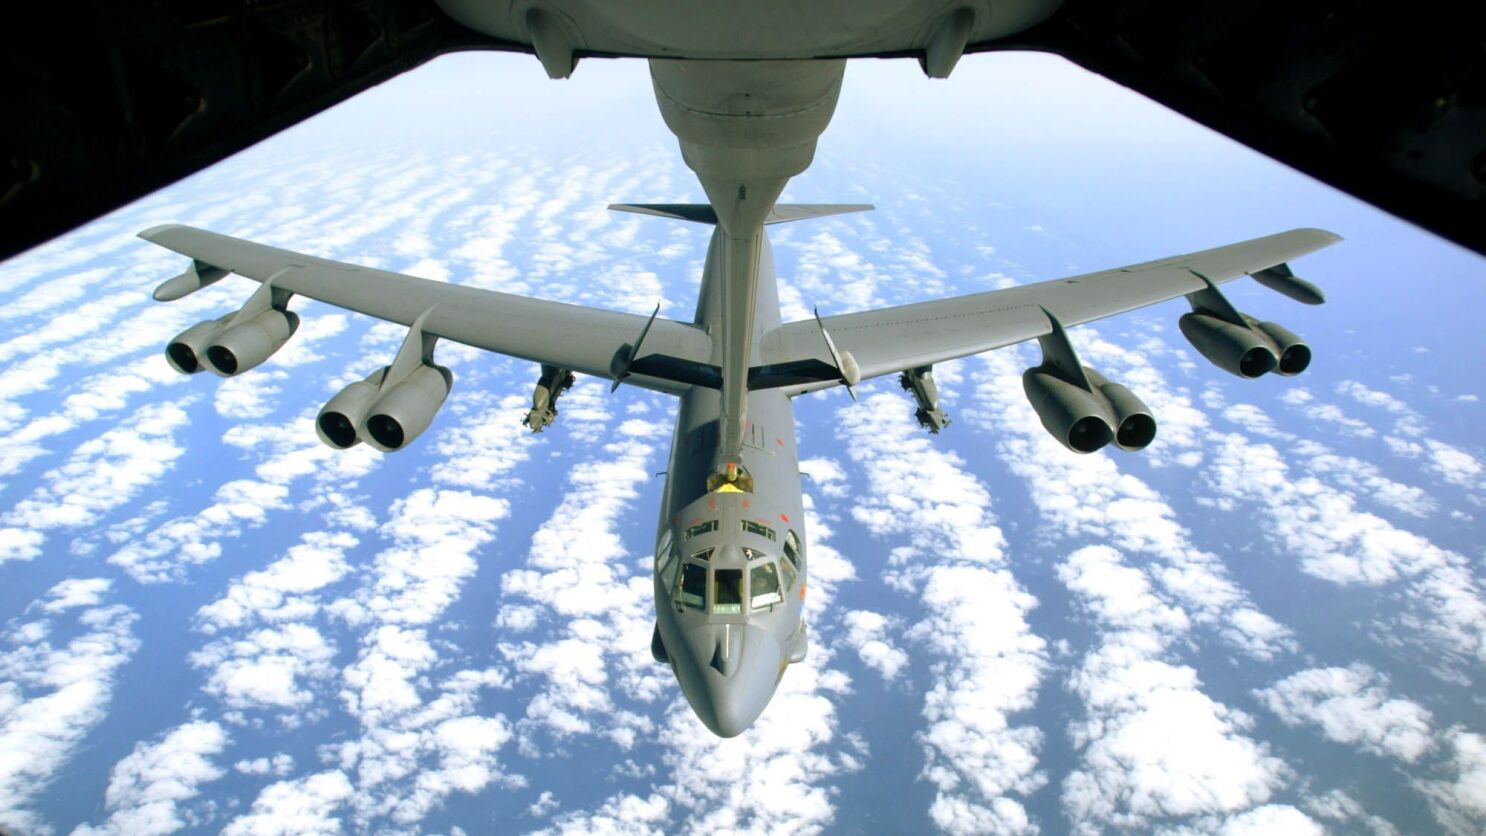 Why the B-52 bomber will fly for 100 years - Los Angeles Times